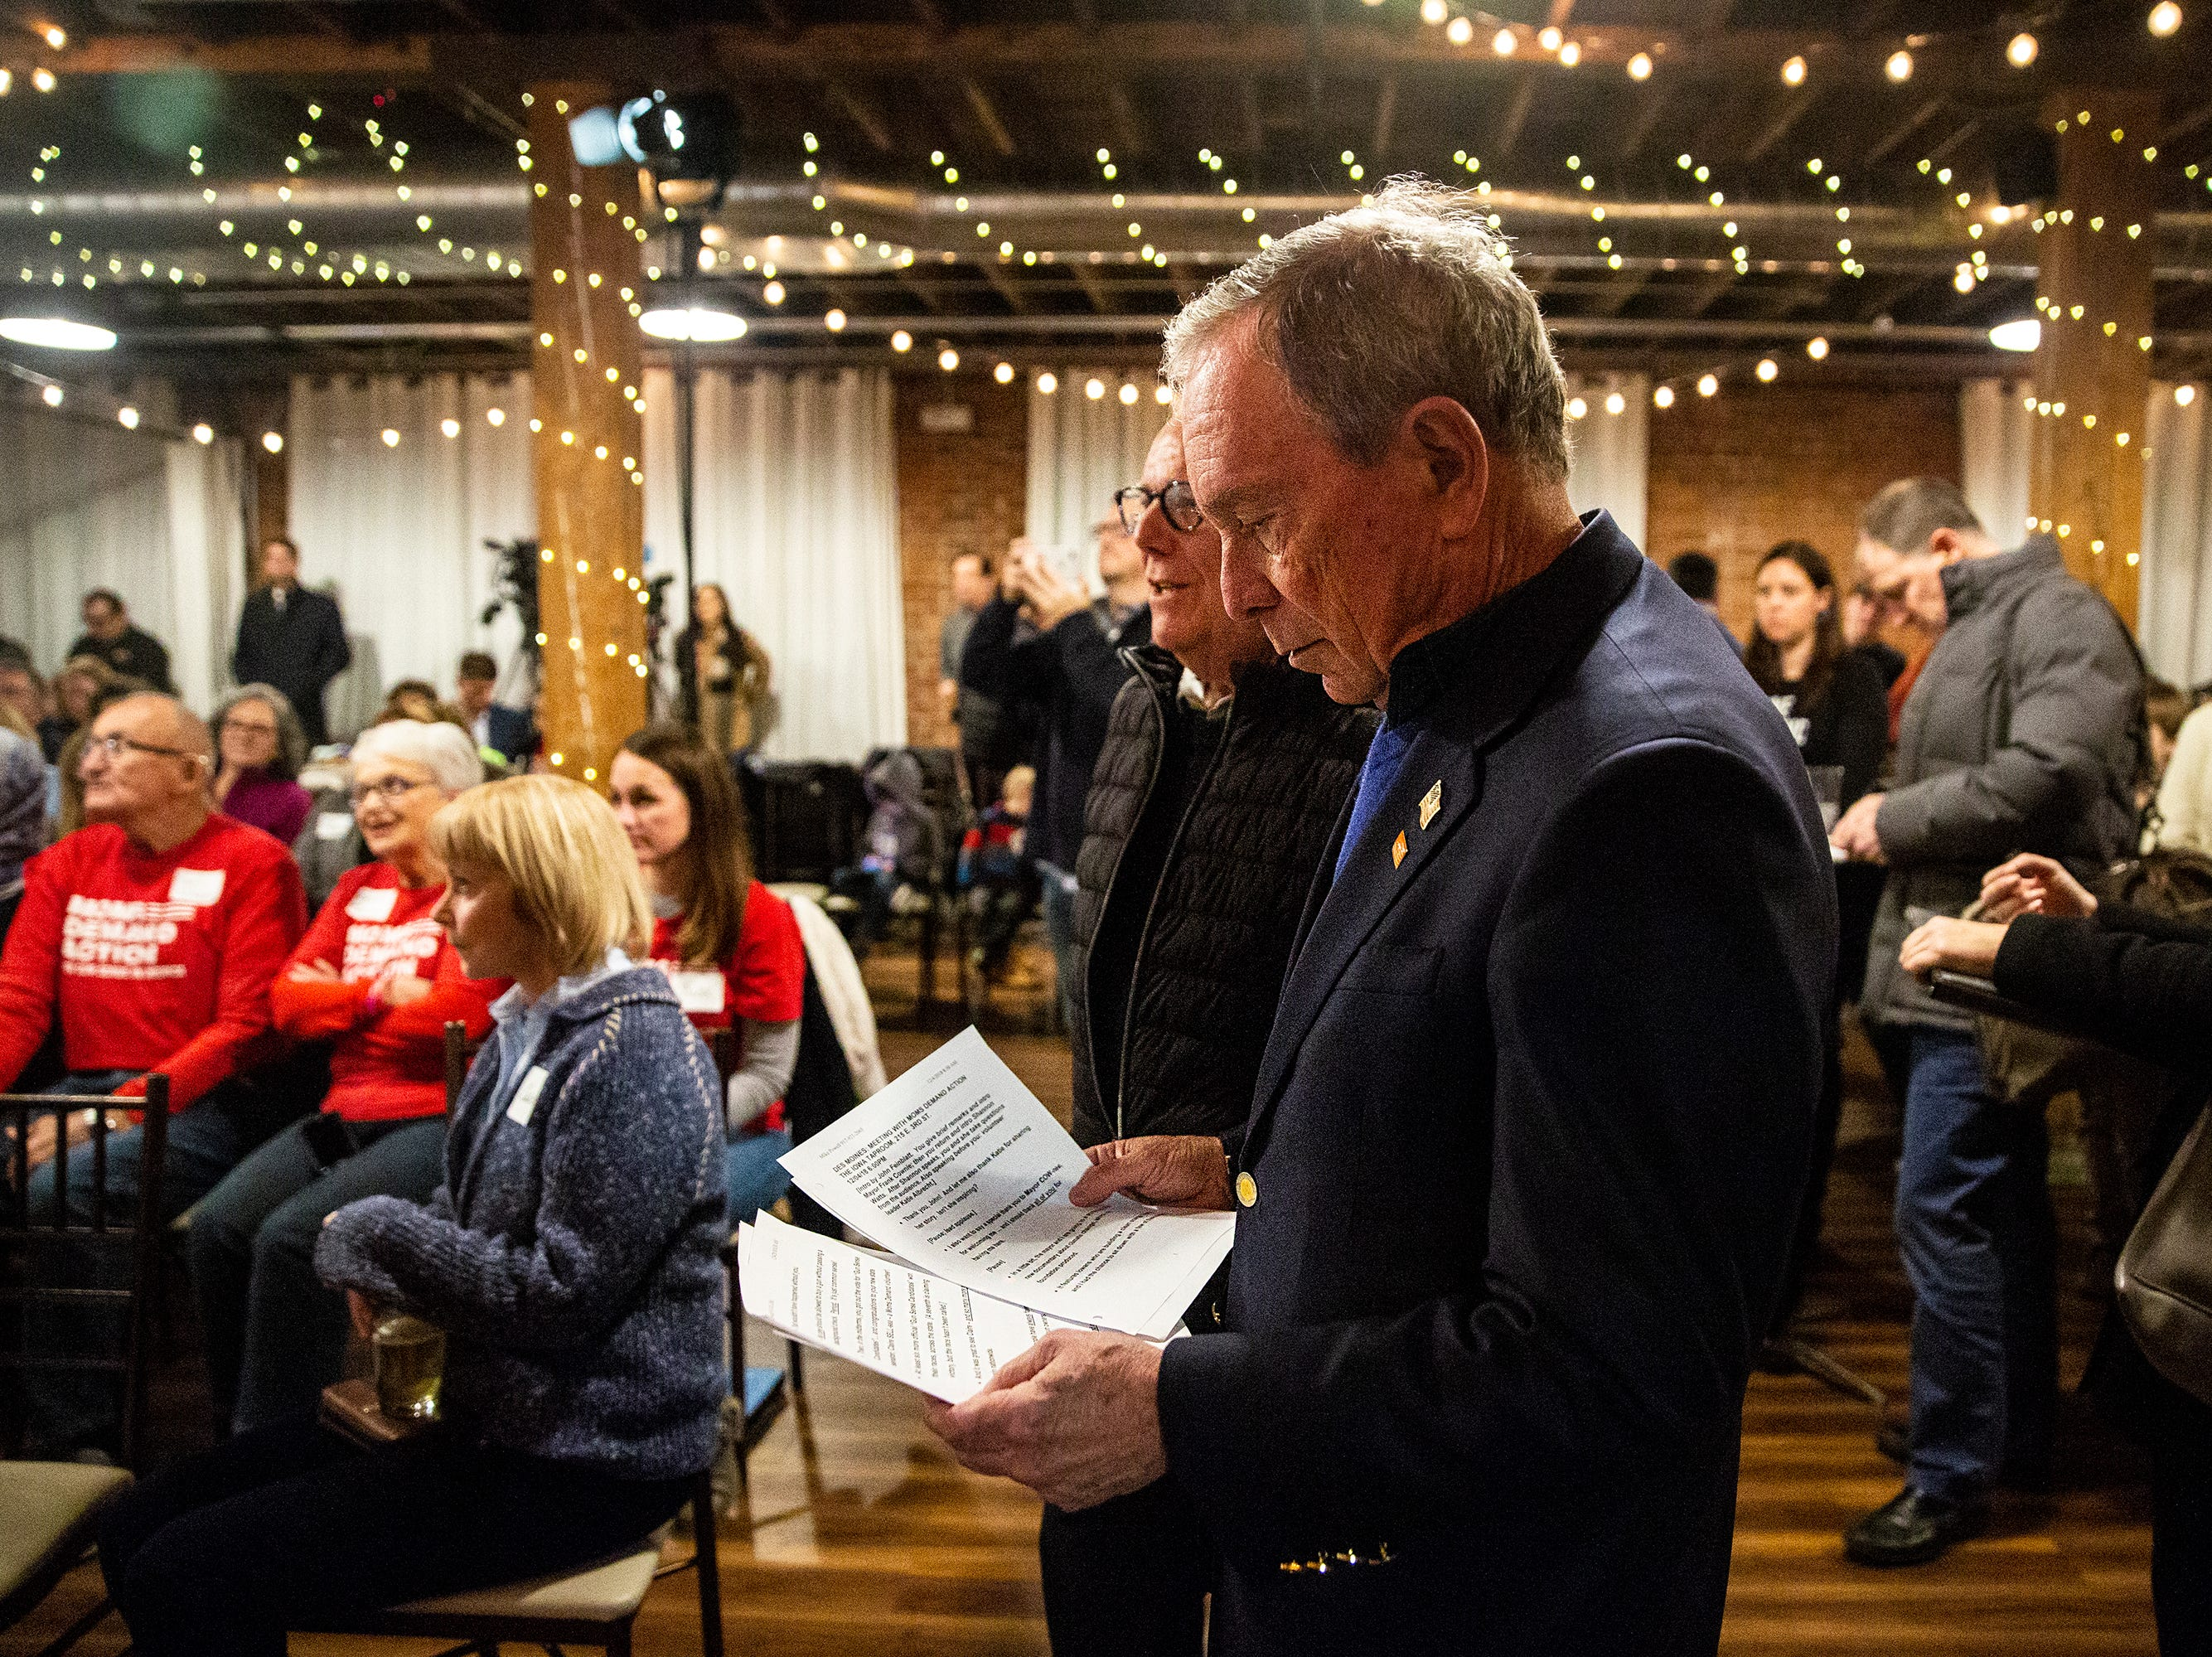 Former New York City Mayor Michael Bloomberg looks at his notes before speaking to the crowd gathered at an Iowa Moms Demand Action member meeting on Tuesday, Dec. 4, 2018, at the Iowa Taproom in Des Moines.